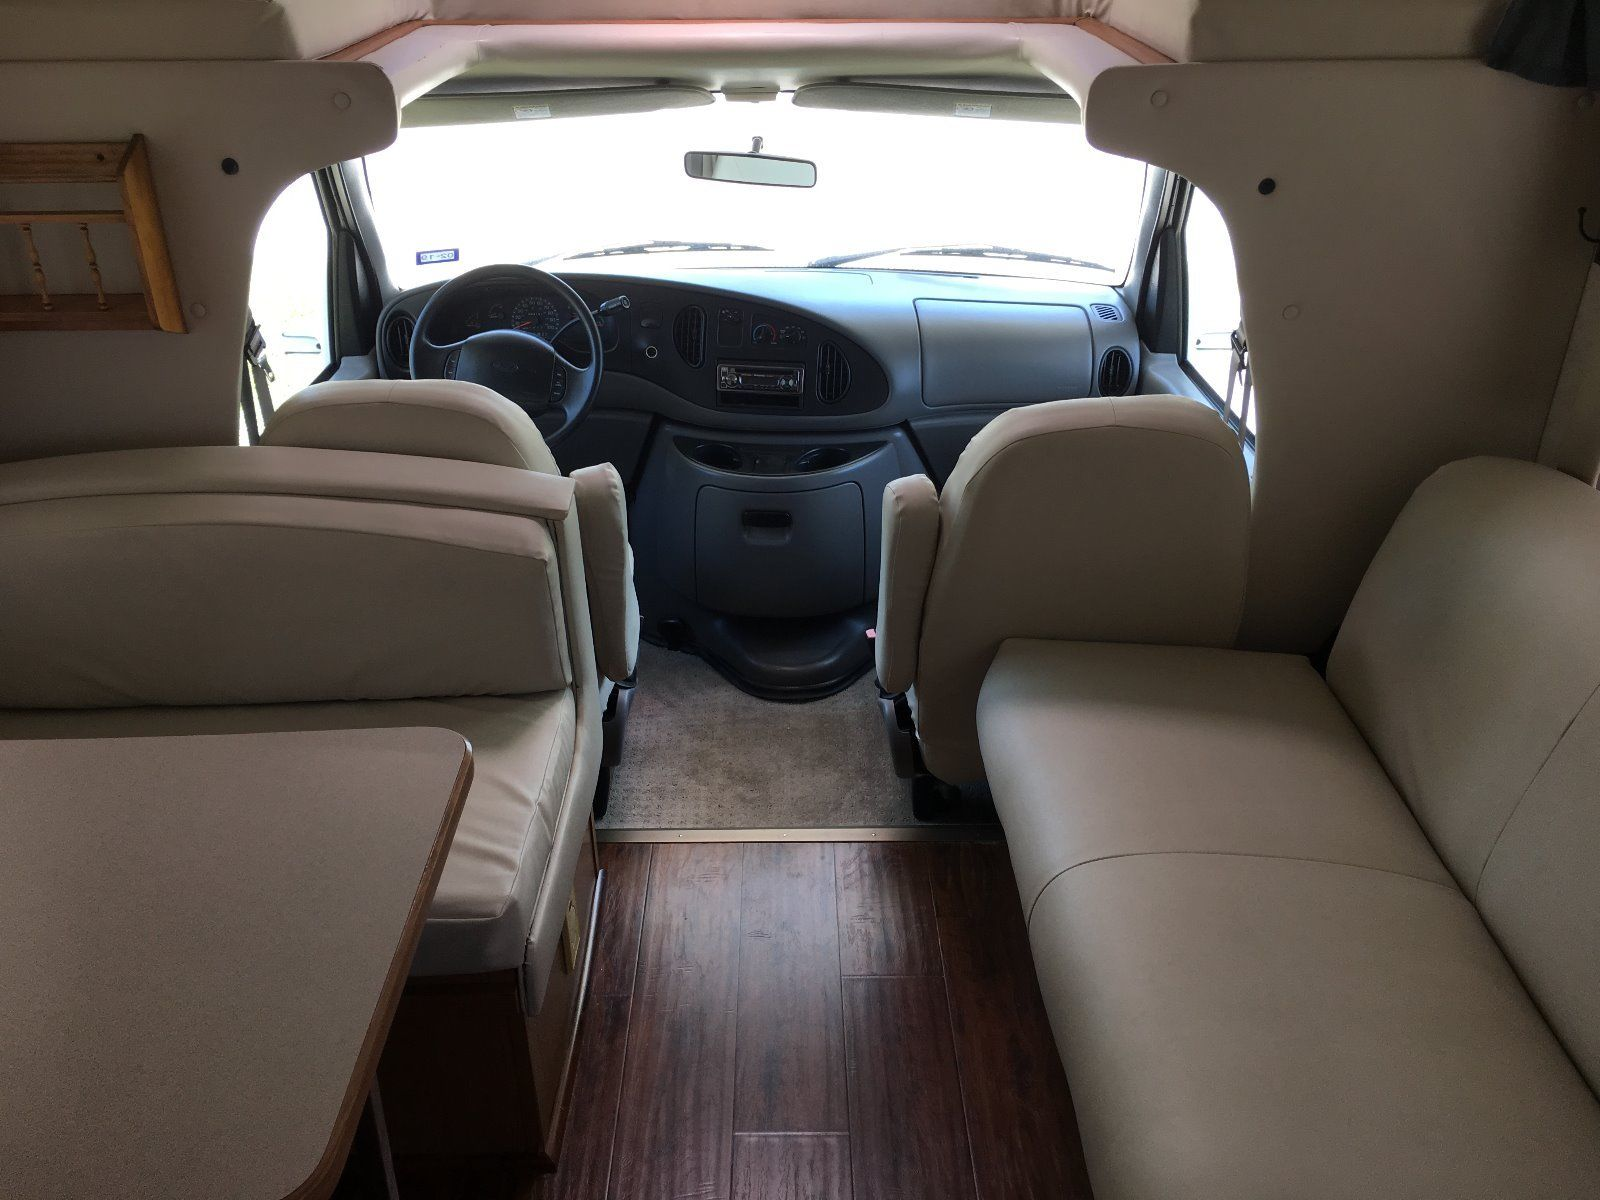 Click image for larger version  Name:1999 RV Front Seating area.jpg Views:54 Size:181.4 KB ID:222866